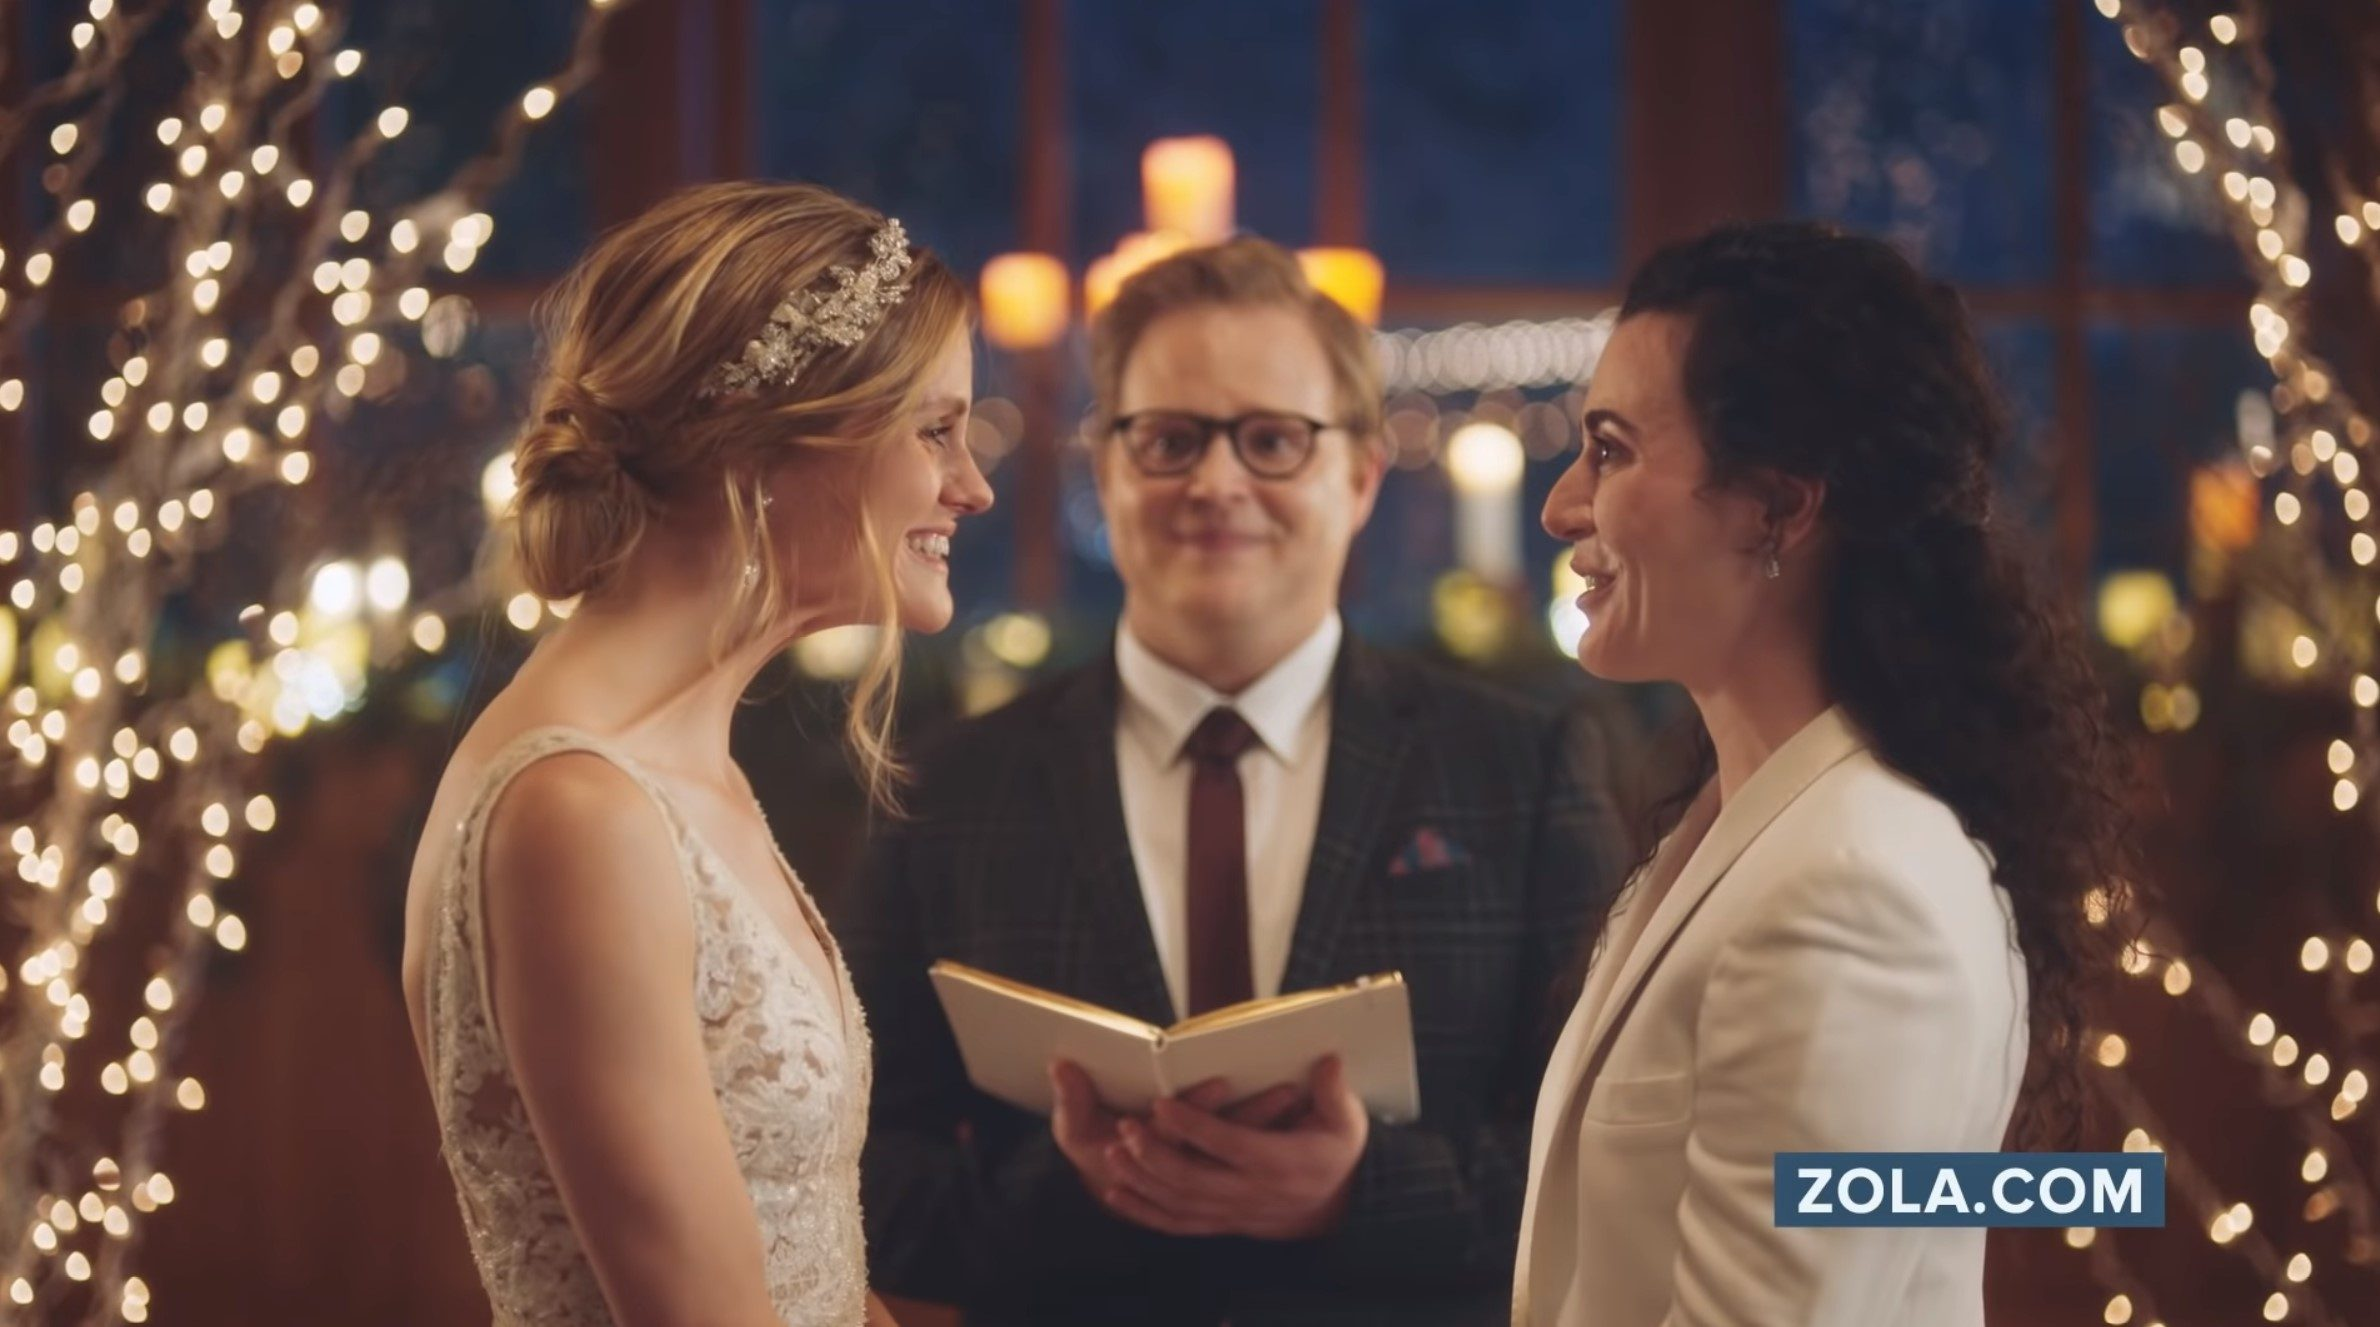 Hallmark Channel Faces Backlash for Airing, Then Taking Down, Ad Featuring Lesbian Brides